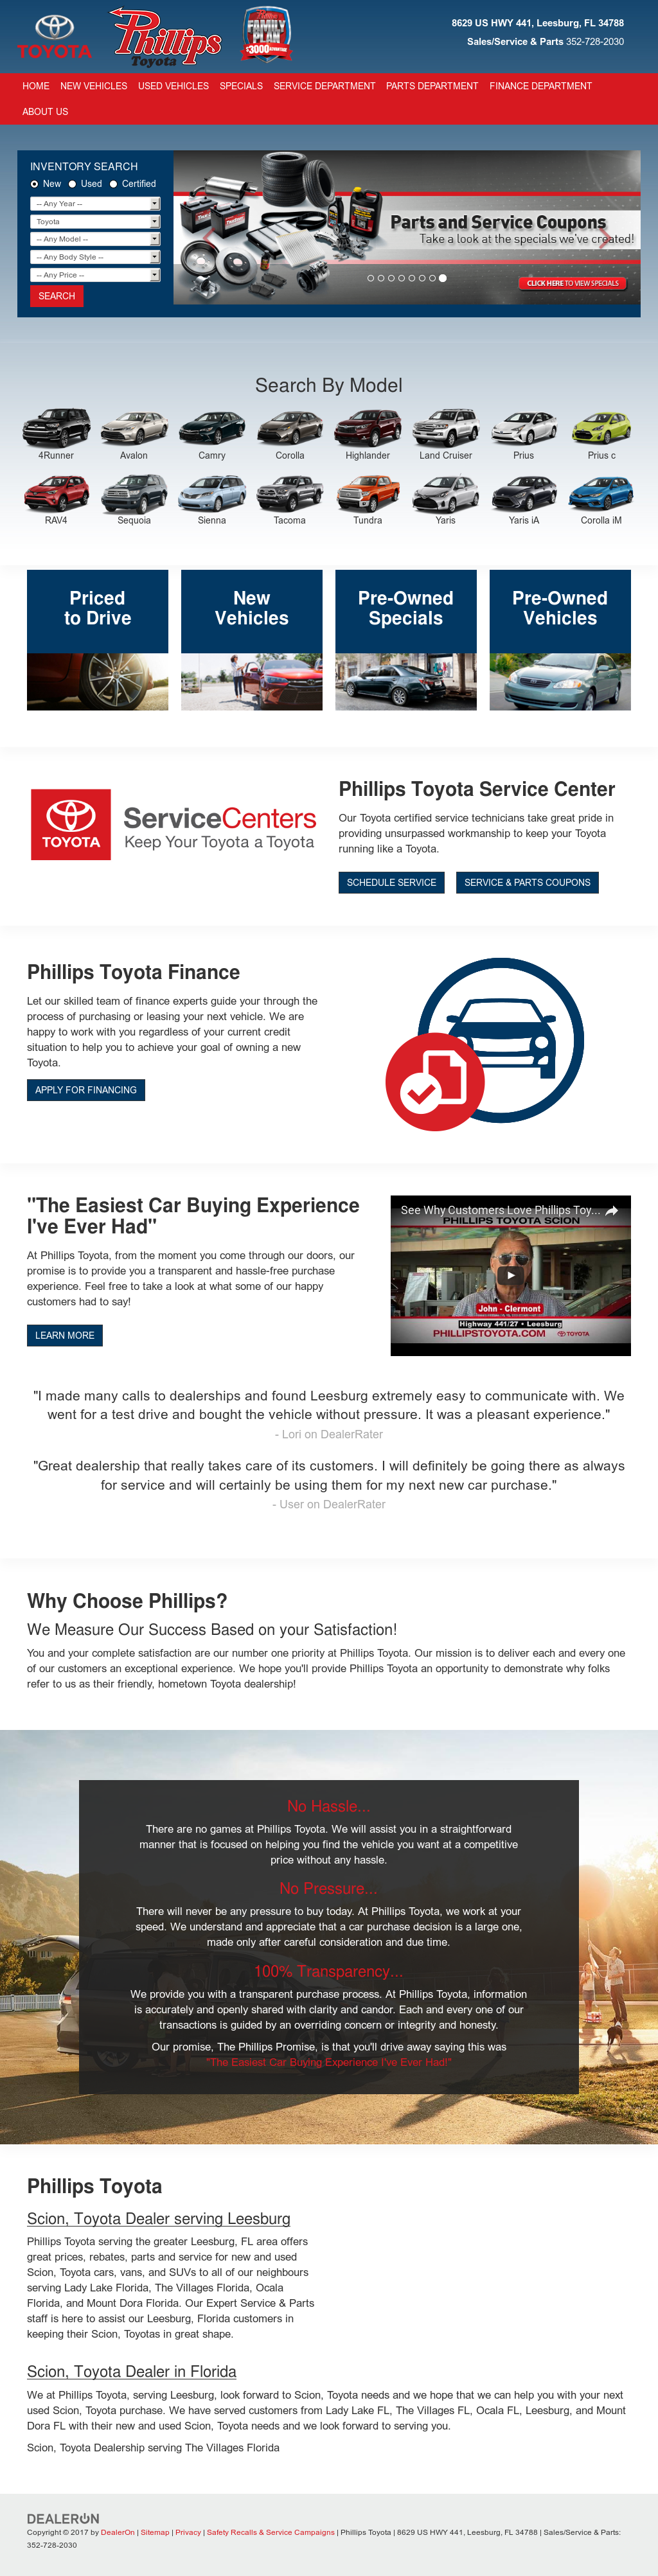 Phillips Toyota petitors Revenue and Employees Owler pany